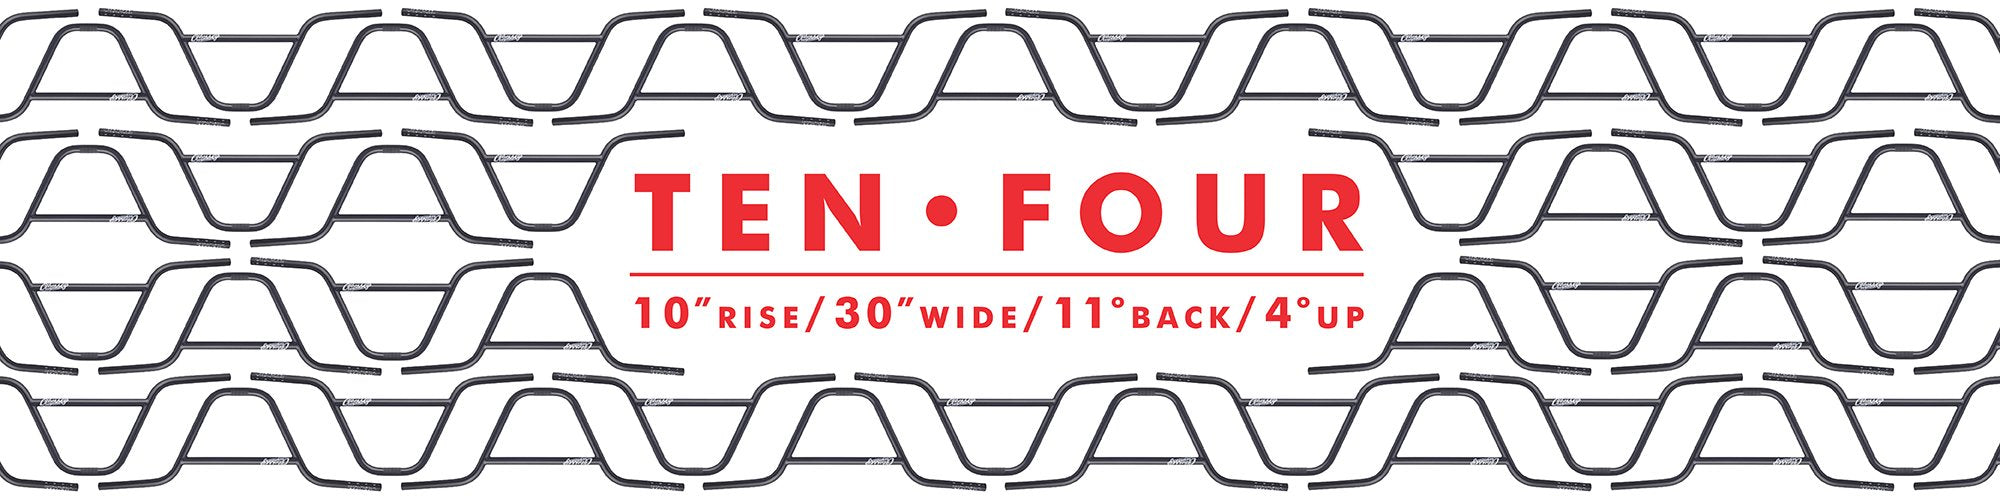 Ten Four Bar